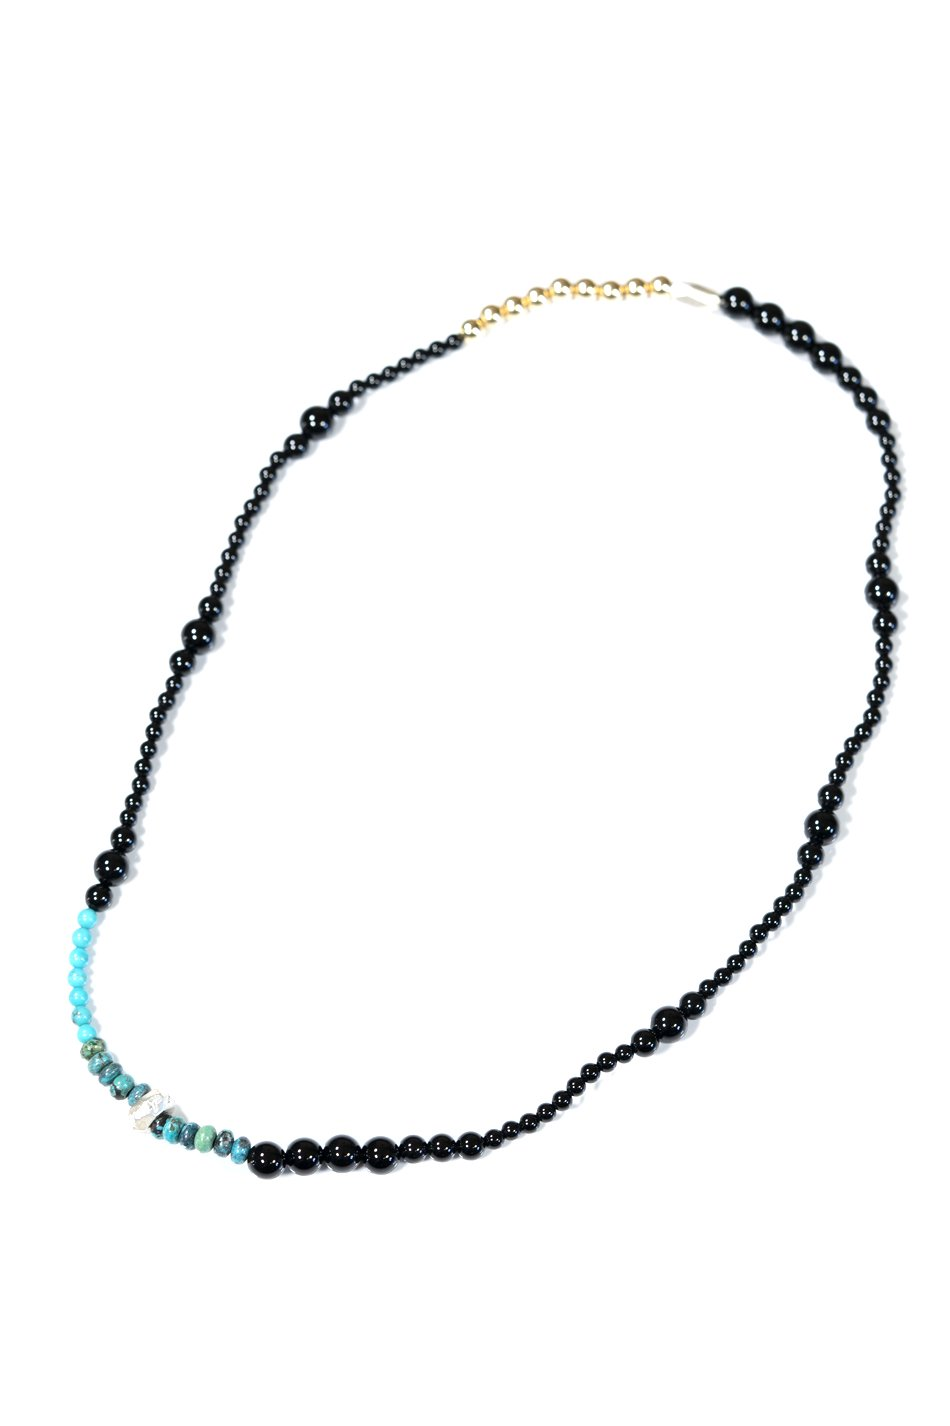 Cut Beads Stretch Necklace /14KGFLD